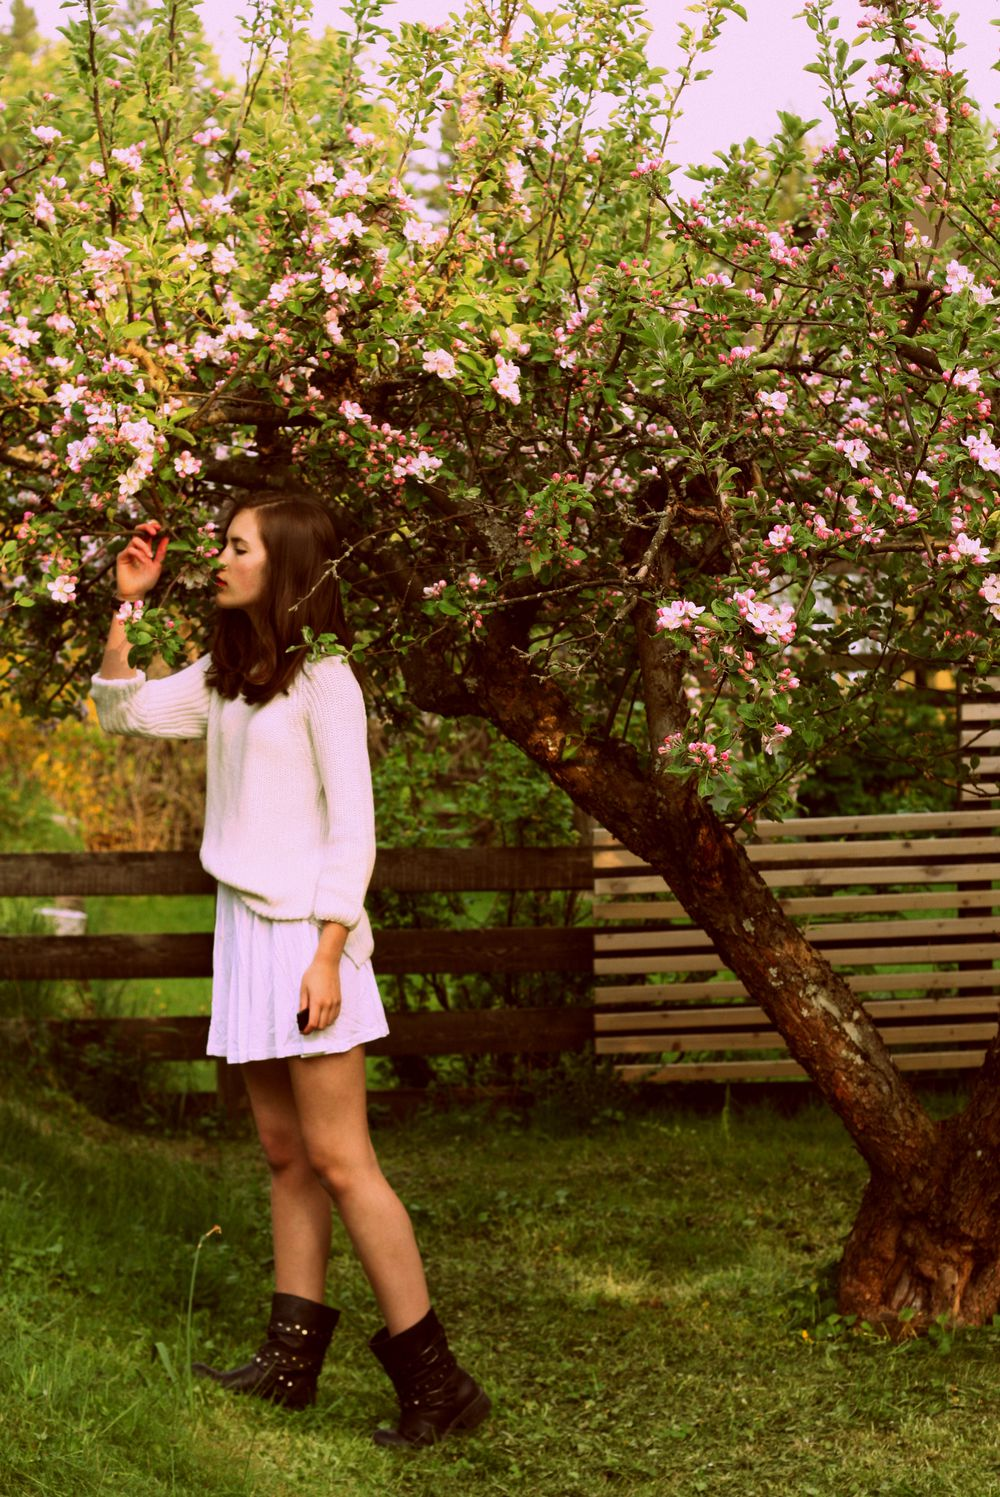 flower, tree, fashion, angelica blick style, elvira axelsson